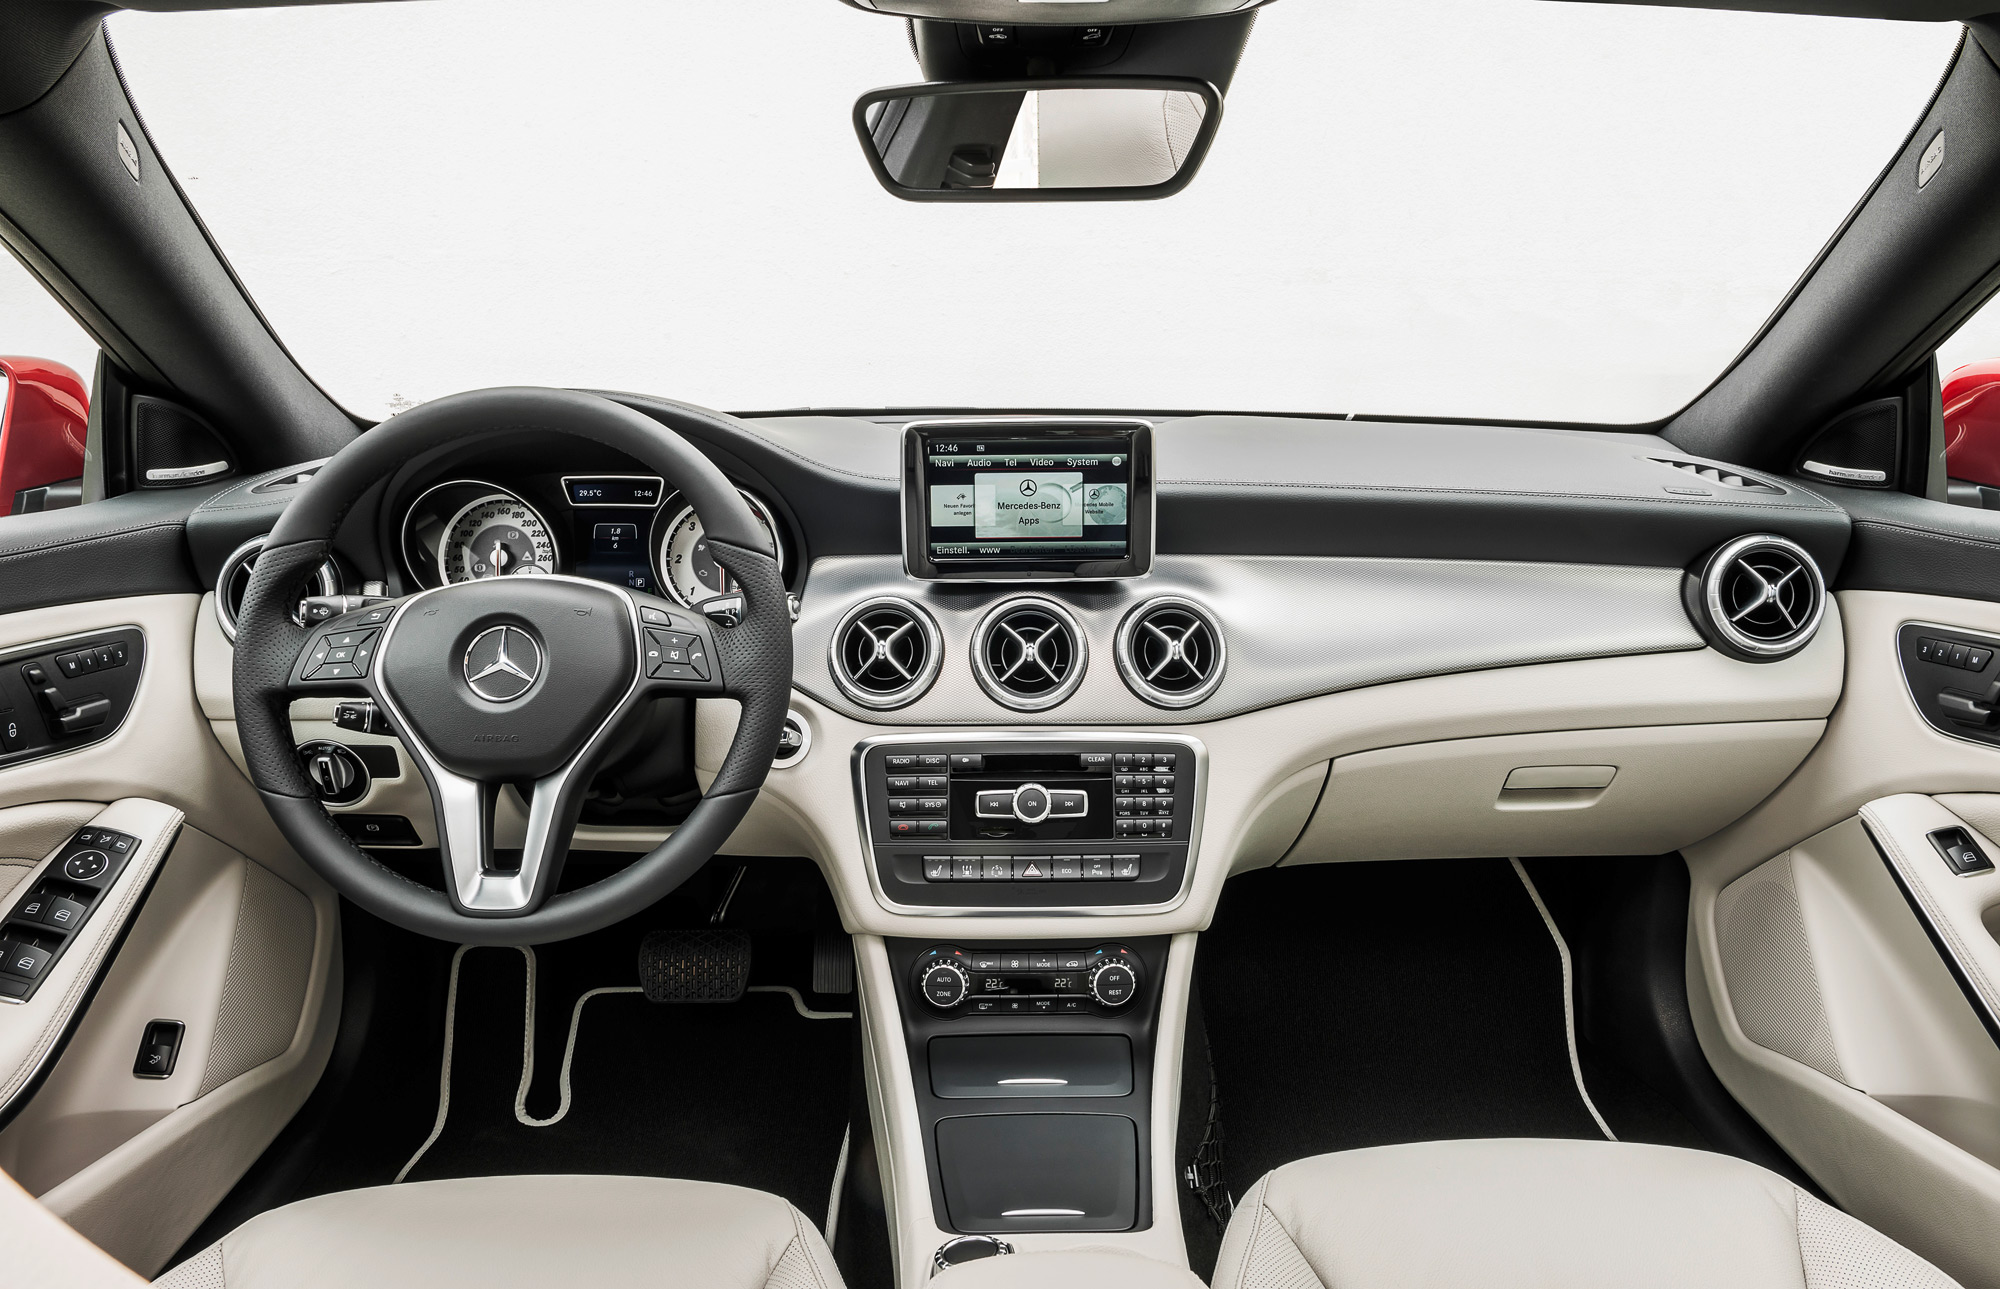 Mercedes Benz Cla 2014 Interior 2016 Mercedes Benz Cla 2014 Interior